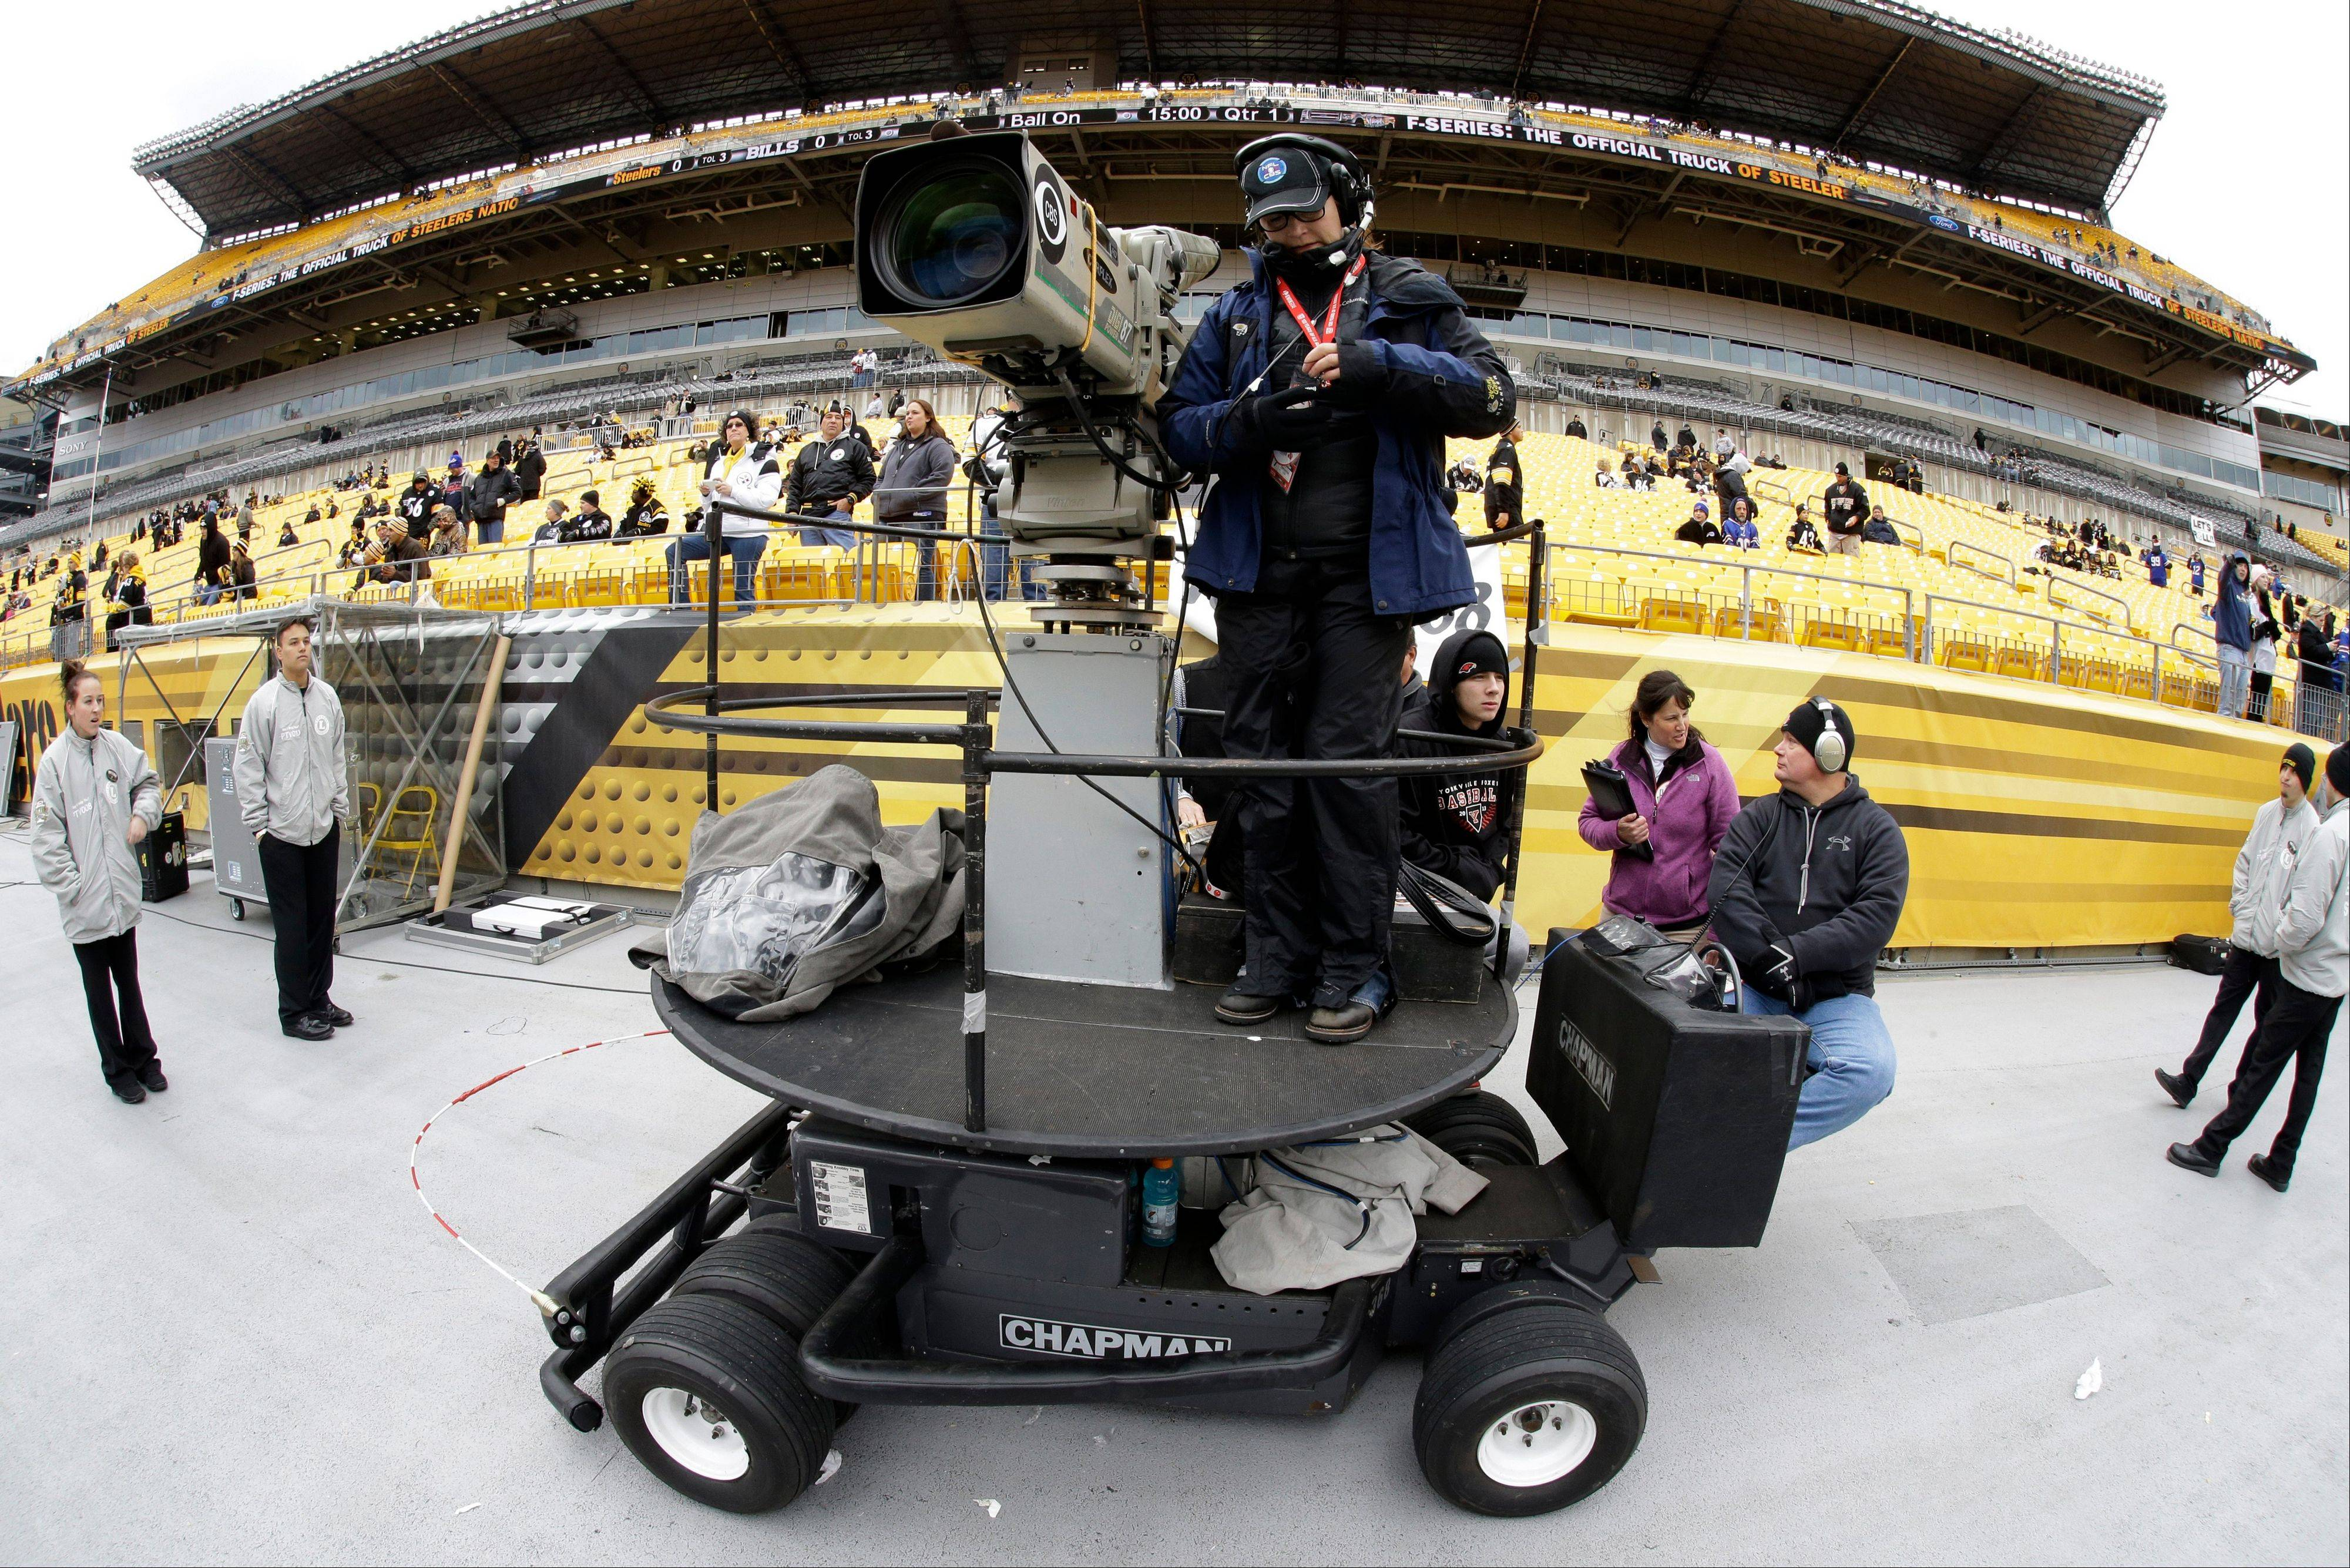 FILE - In this Nov. 10, 2013, file phot, a CBS sideline camera operator prepares for an NFL football game between the Pittsburgh Steelers and the Buffalo Bills in Pittsburgh. The NFL says CBS will televise eight of its Thursday night games next season. The leagues says the contract is for one year, and they have an option to extend it for 2015.